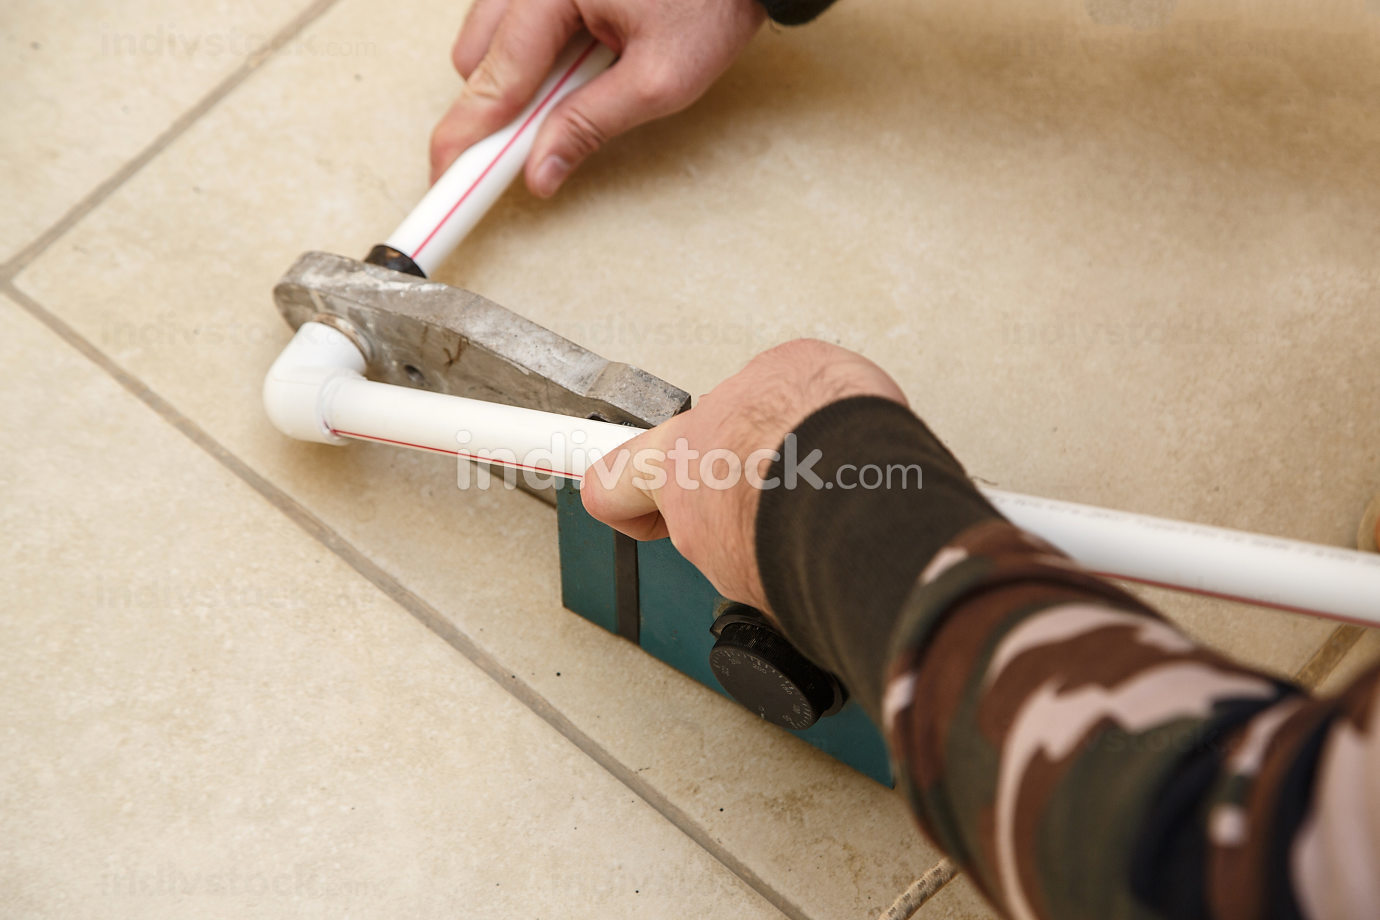 men's hands connect plastic pipes with an iron